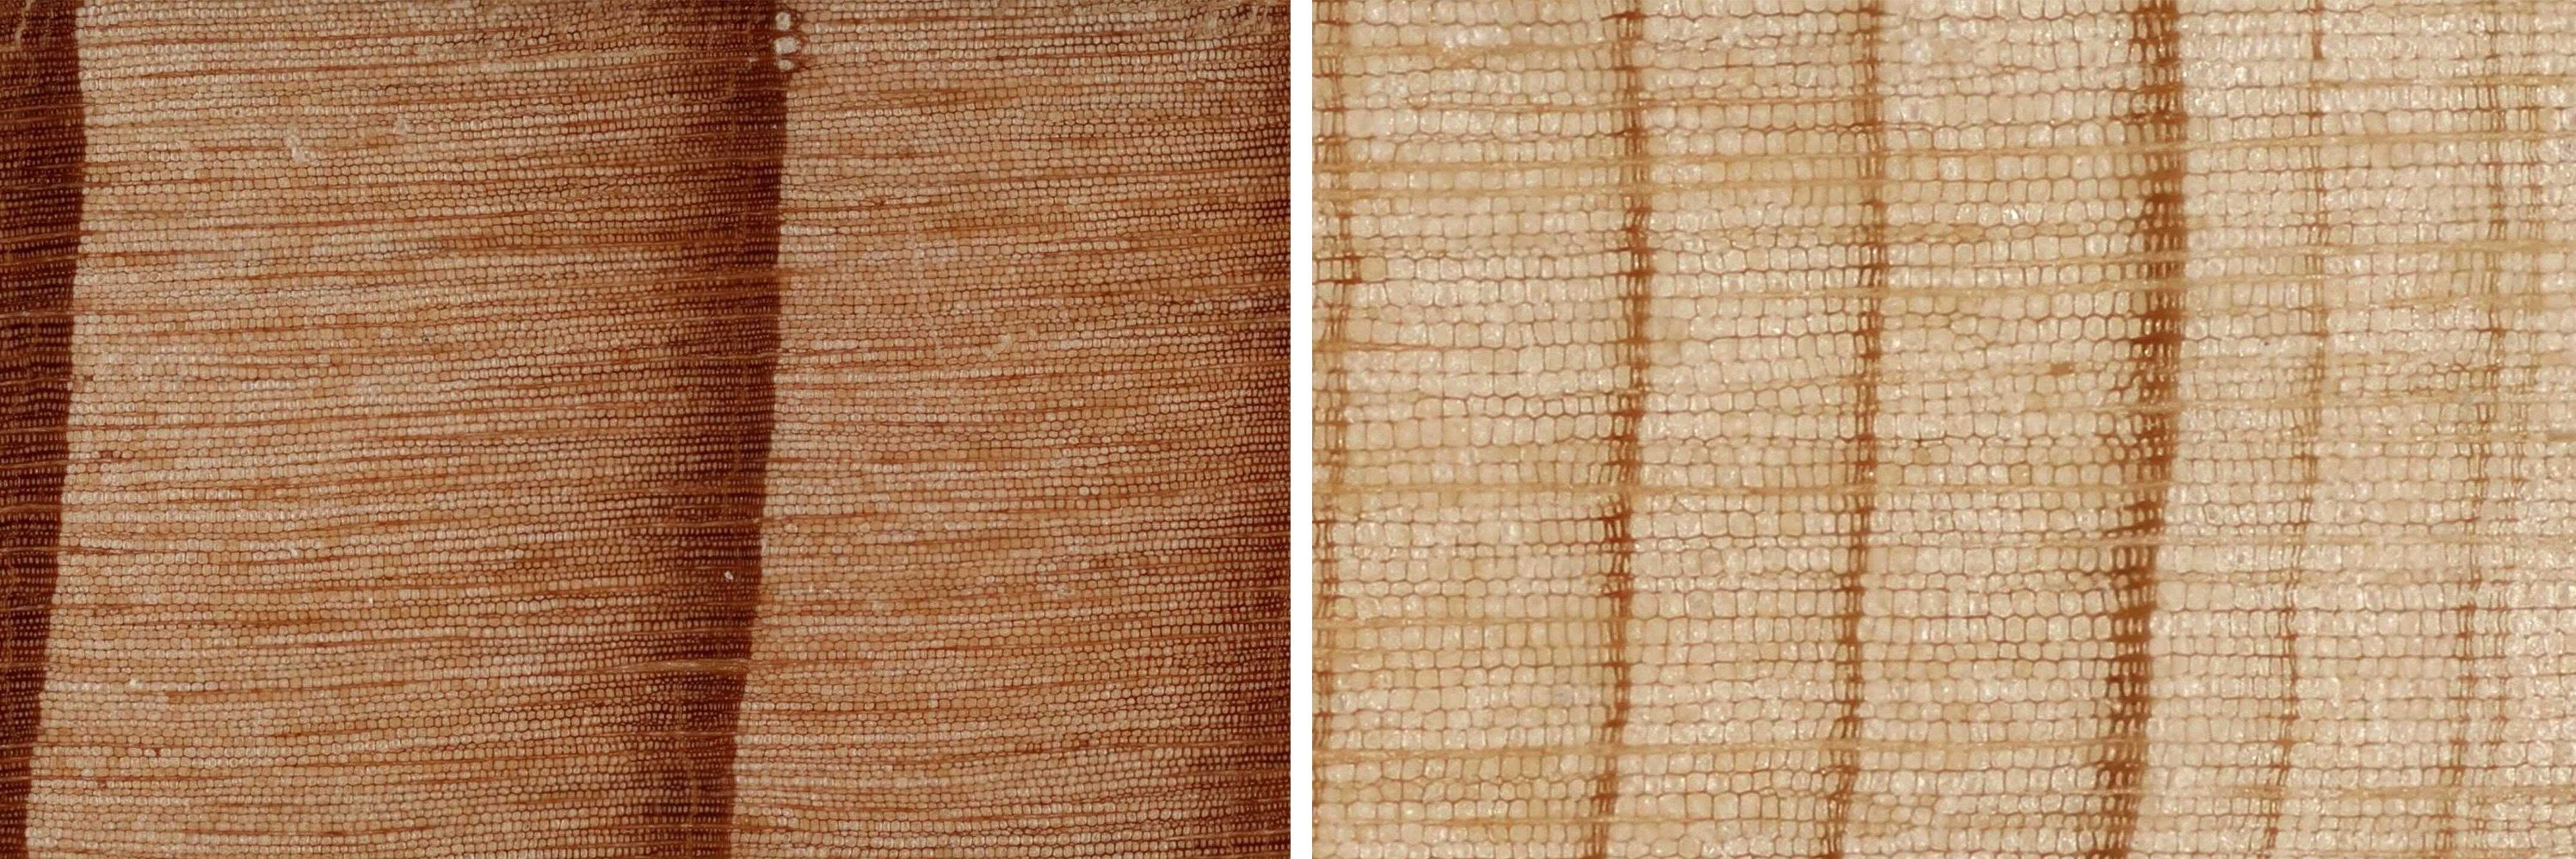 Tree ring scans showing the impact of the drought – trees grow significantly less in times of drought